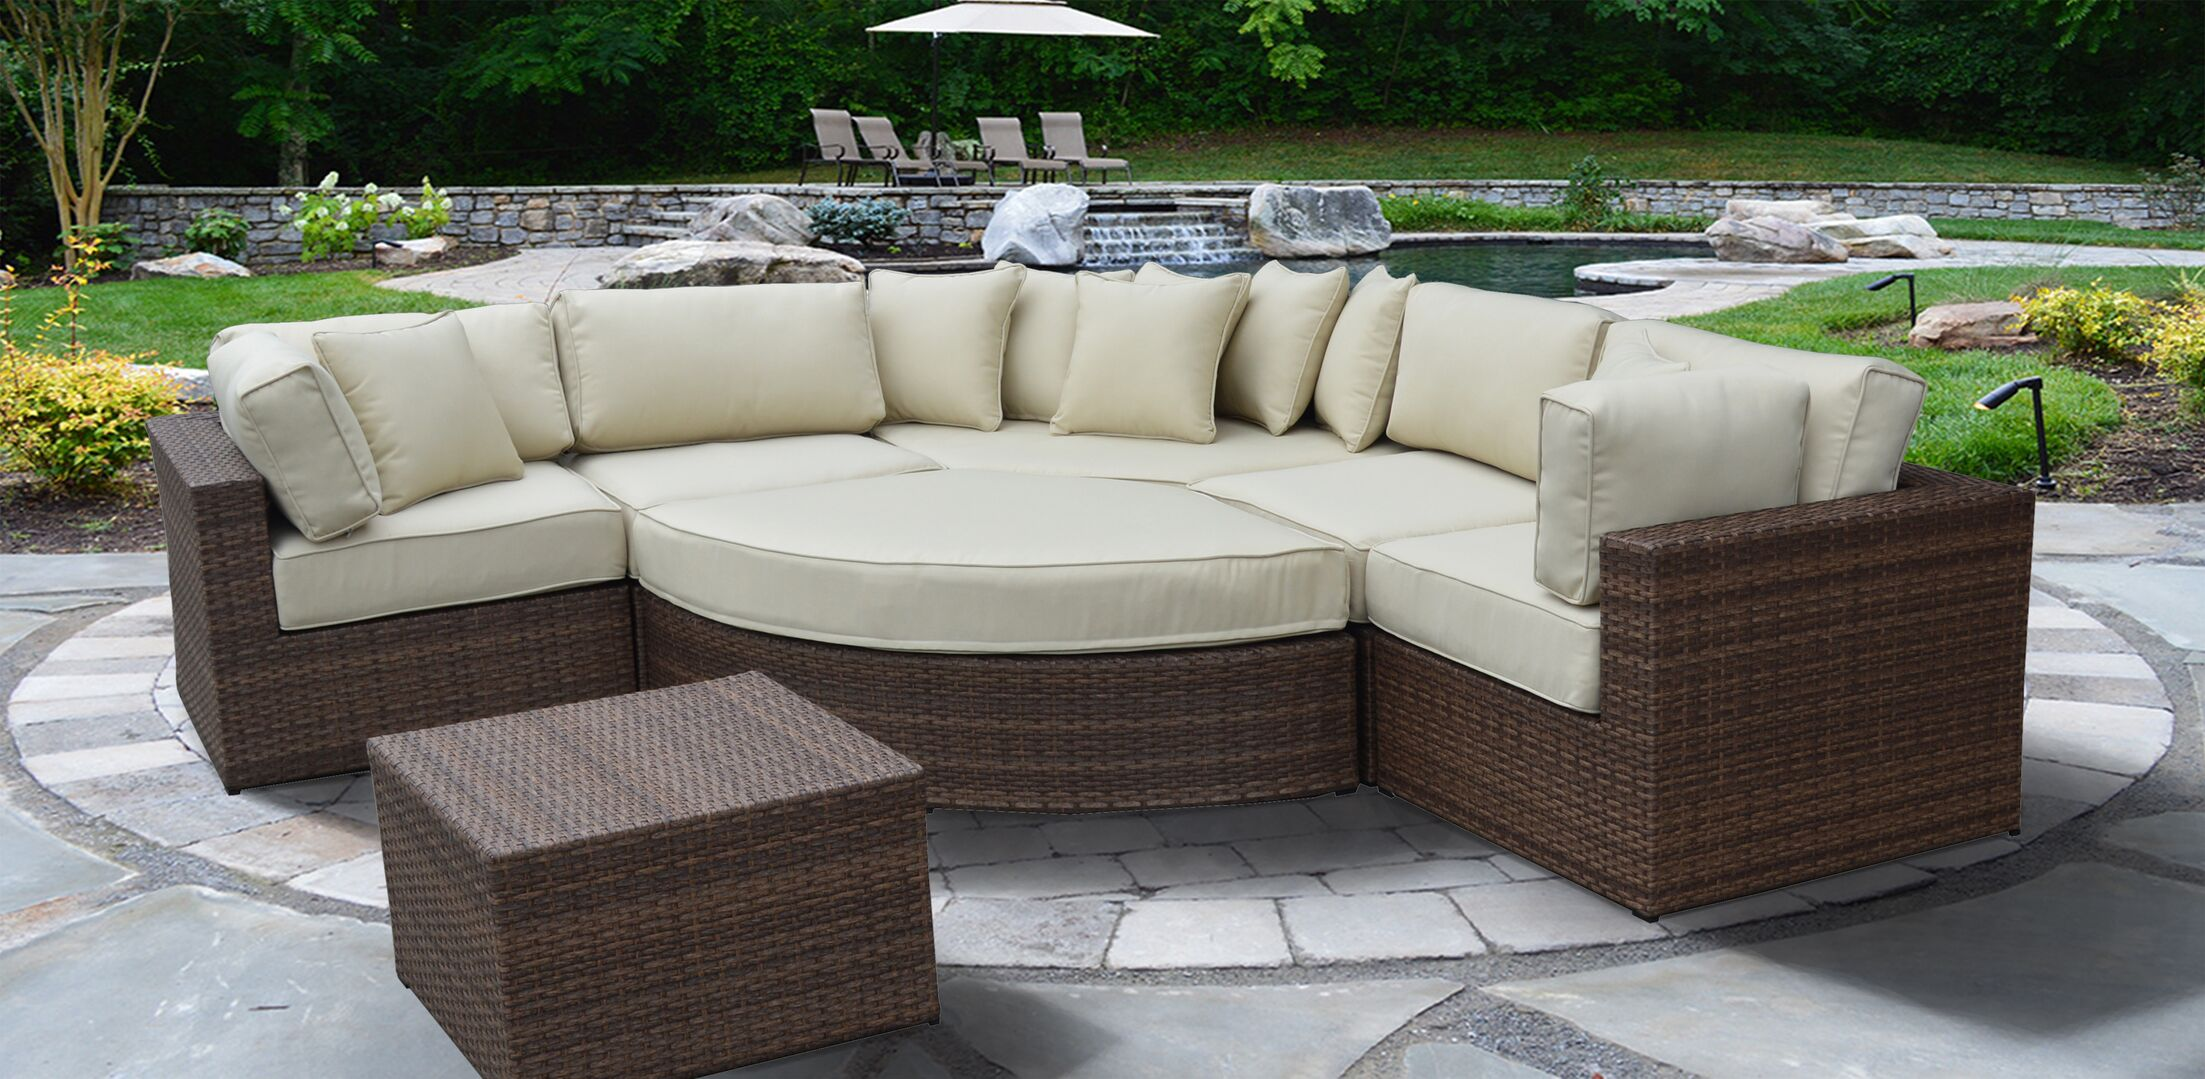 Oberon Lush and Stylish 7 Piece Rattan Sectional Set with Cushions